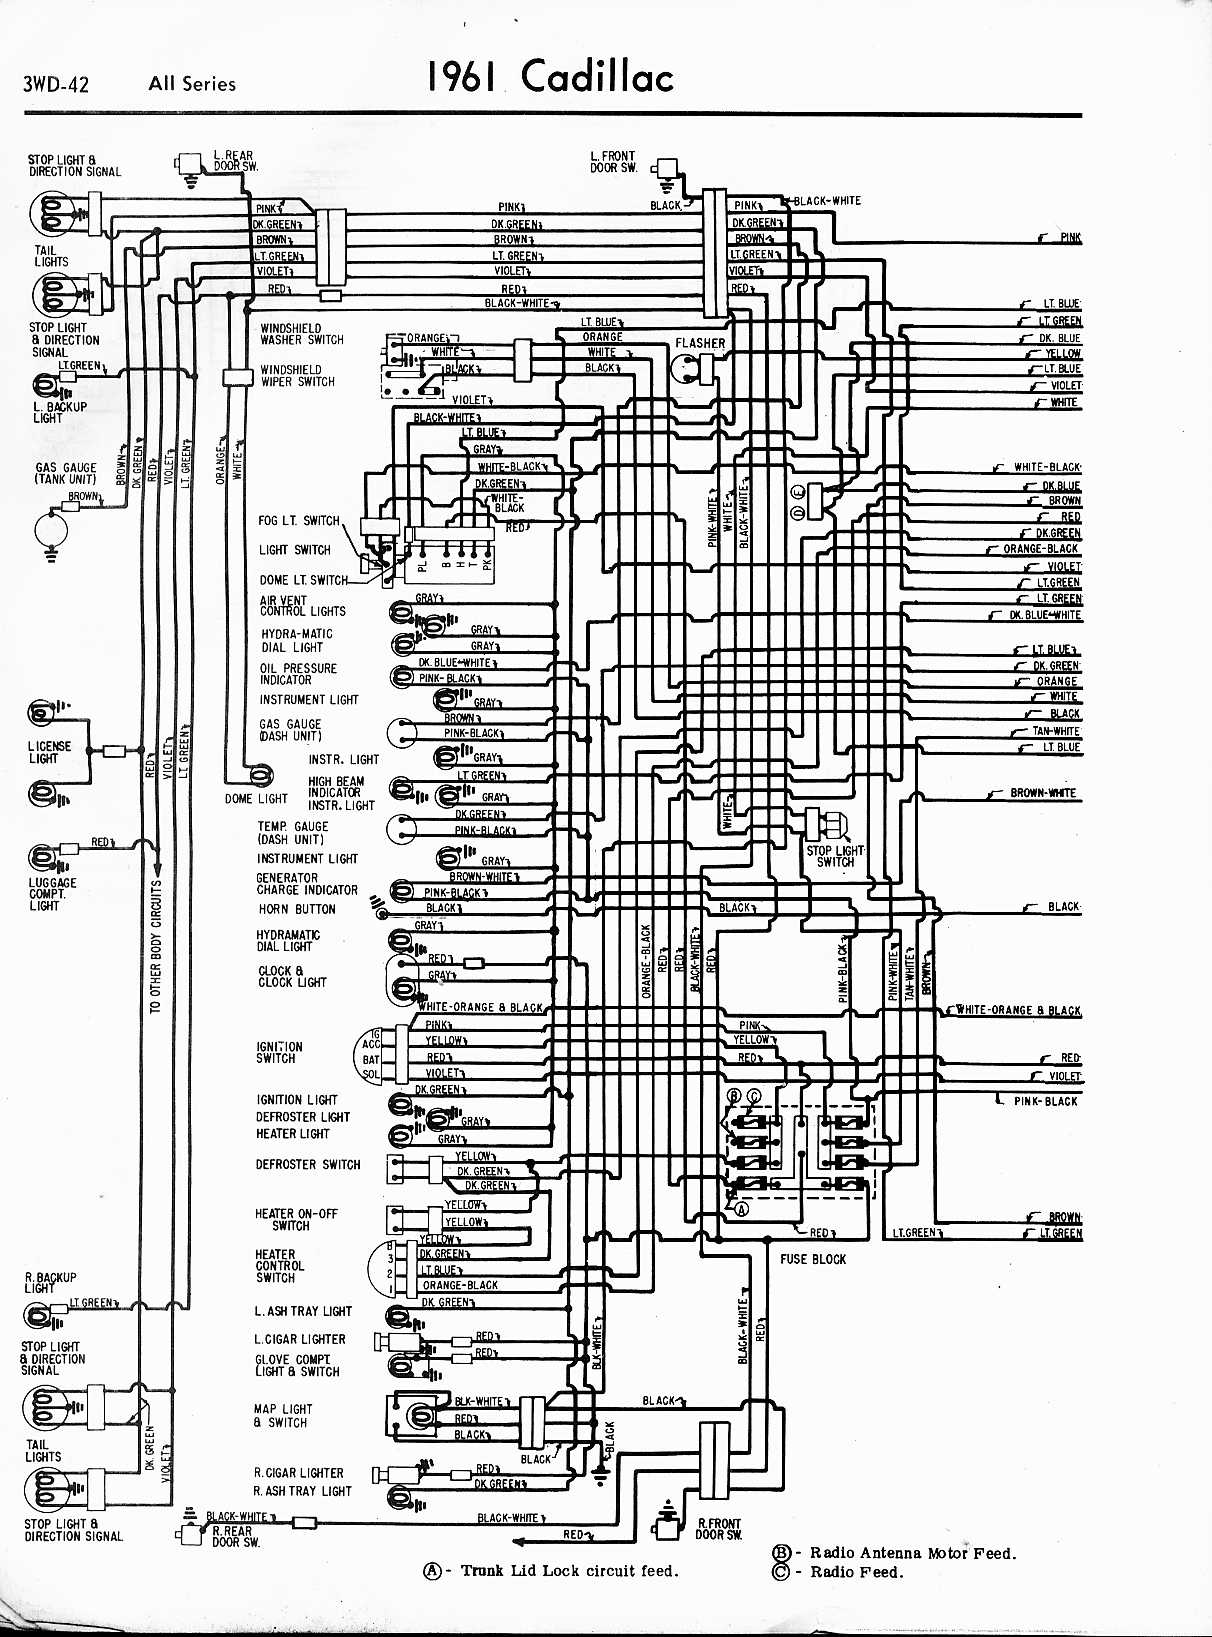 Cadillac Wiring Diagrams : Cadillac ignition wiring free engine image for